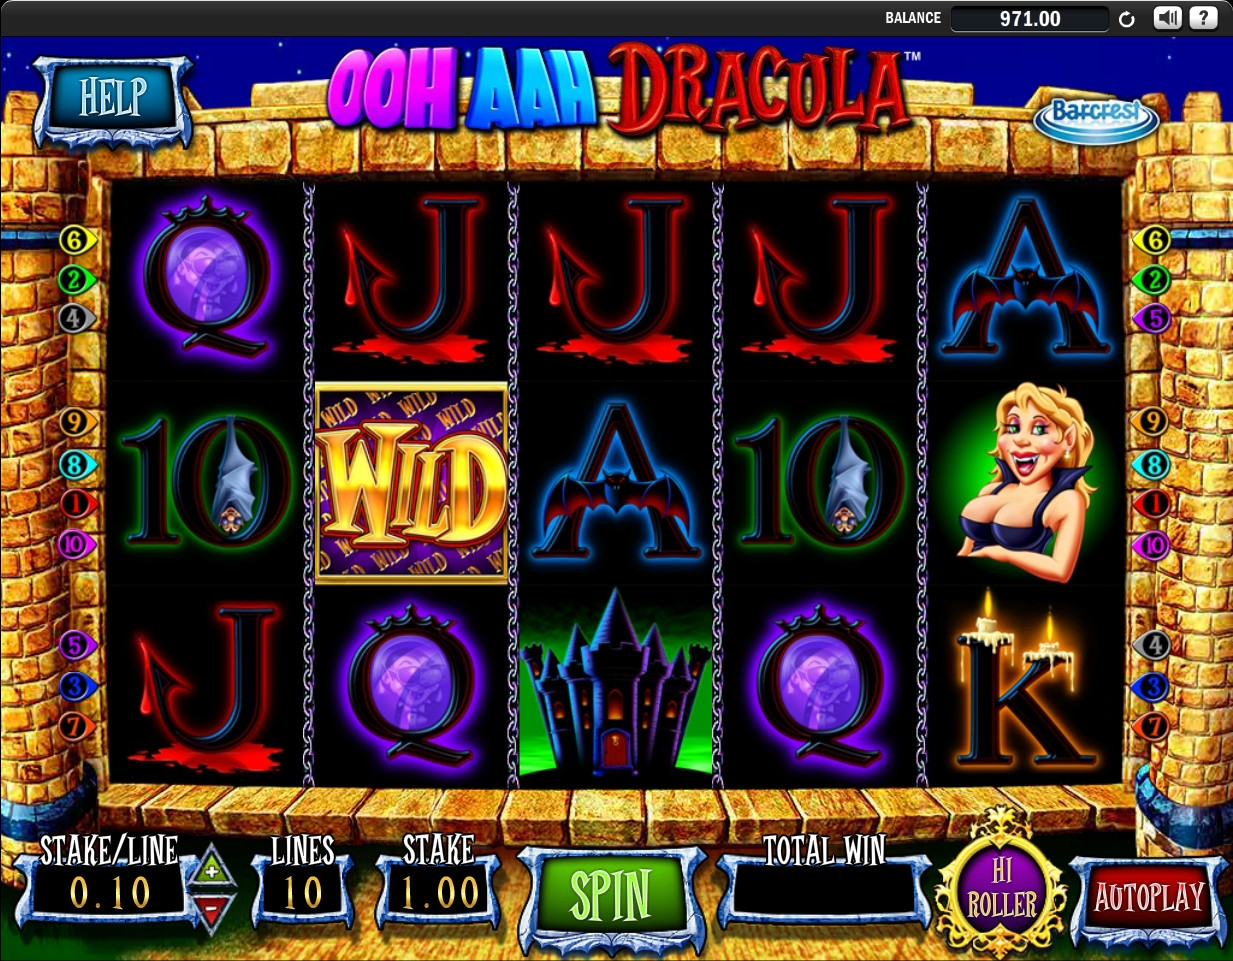 Ooh Aah Dracula Slot Machine Online ᐈ Barcrest™ Casino Slots